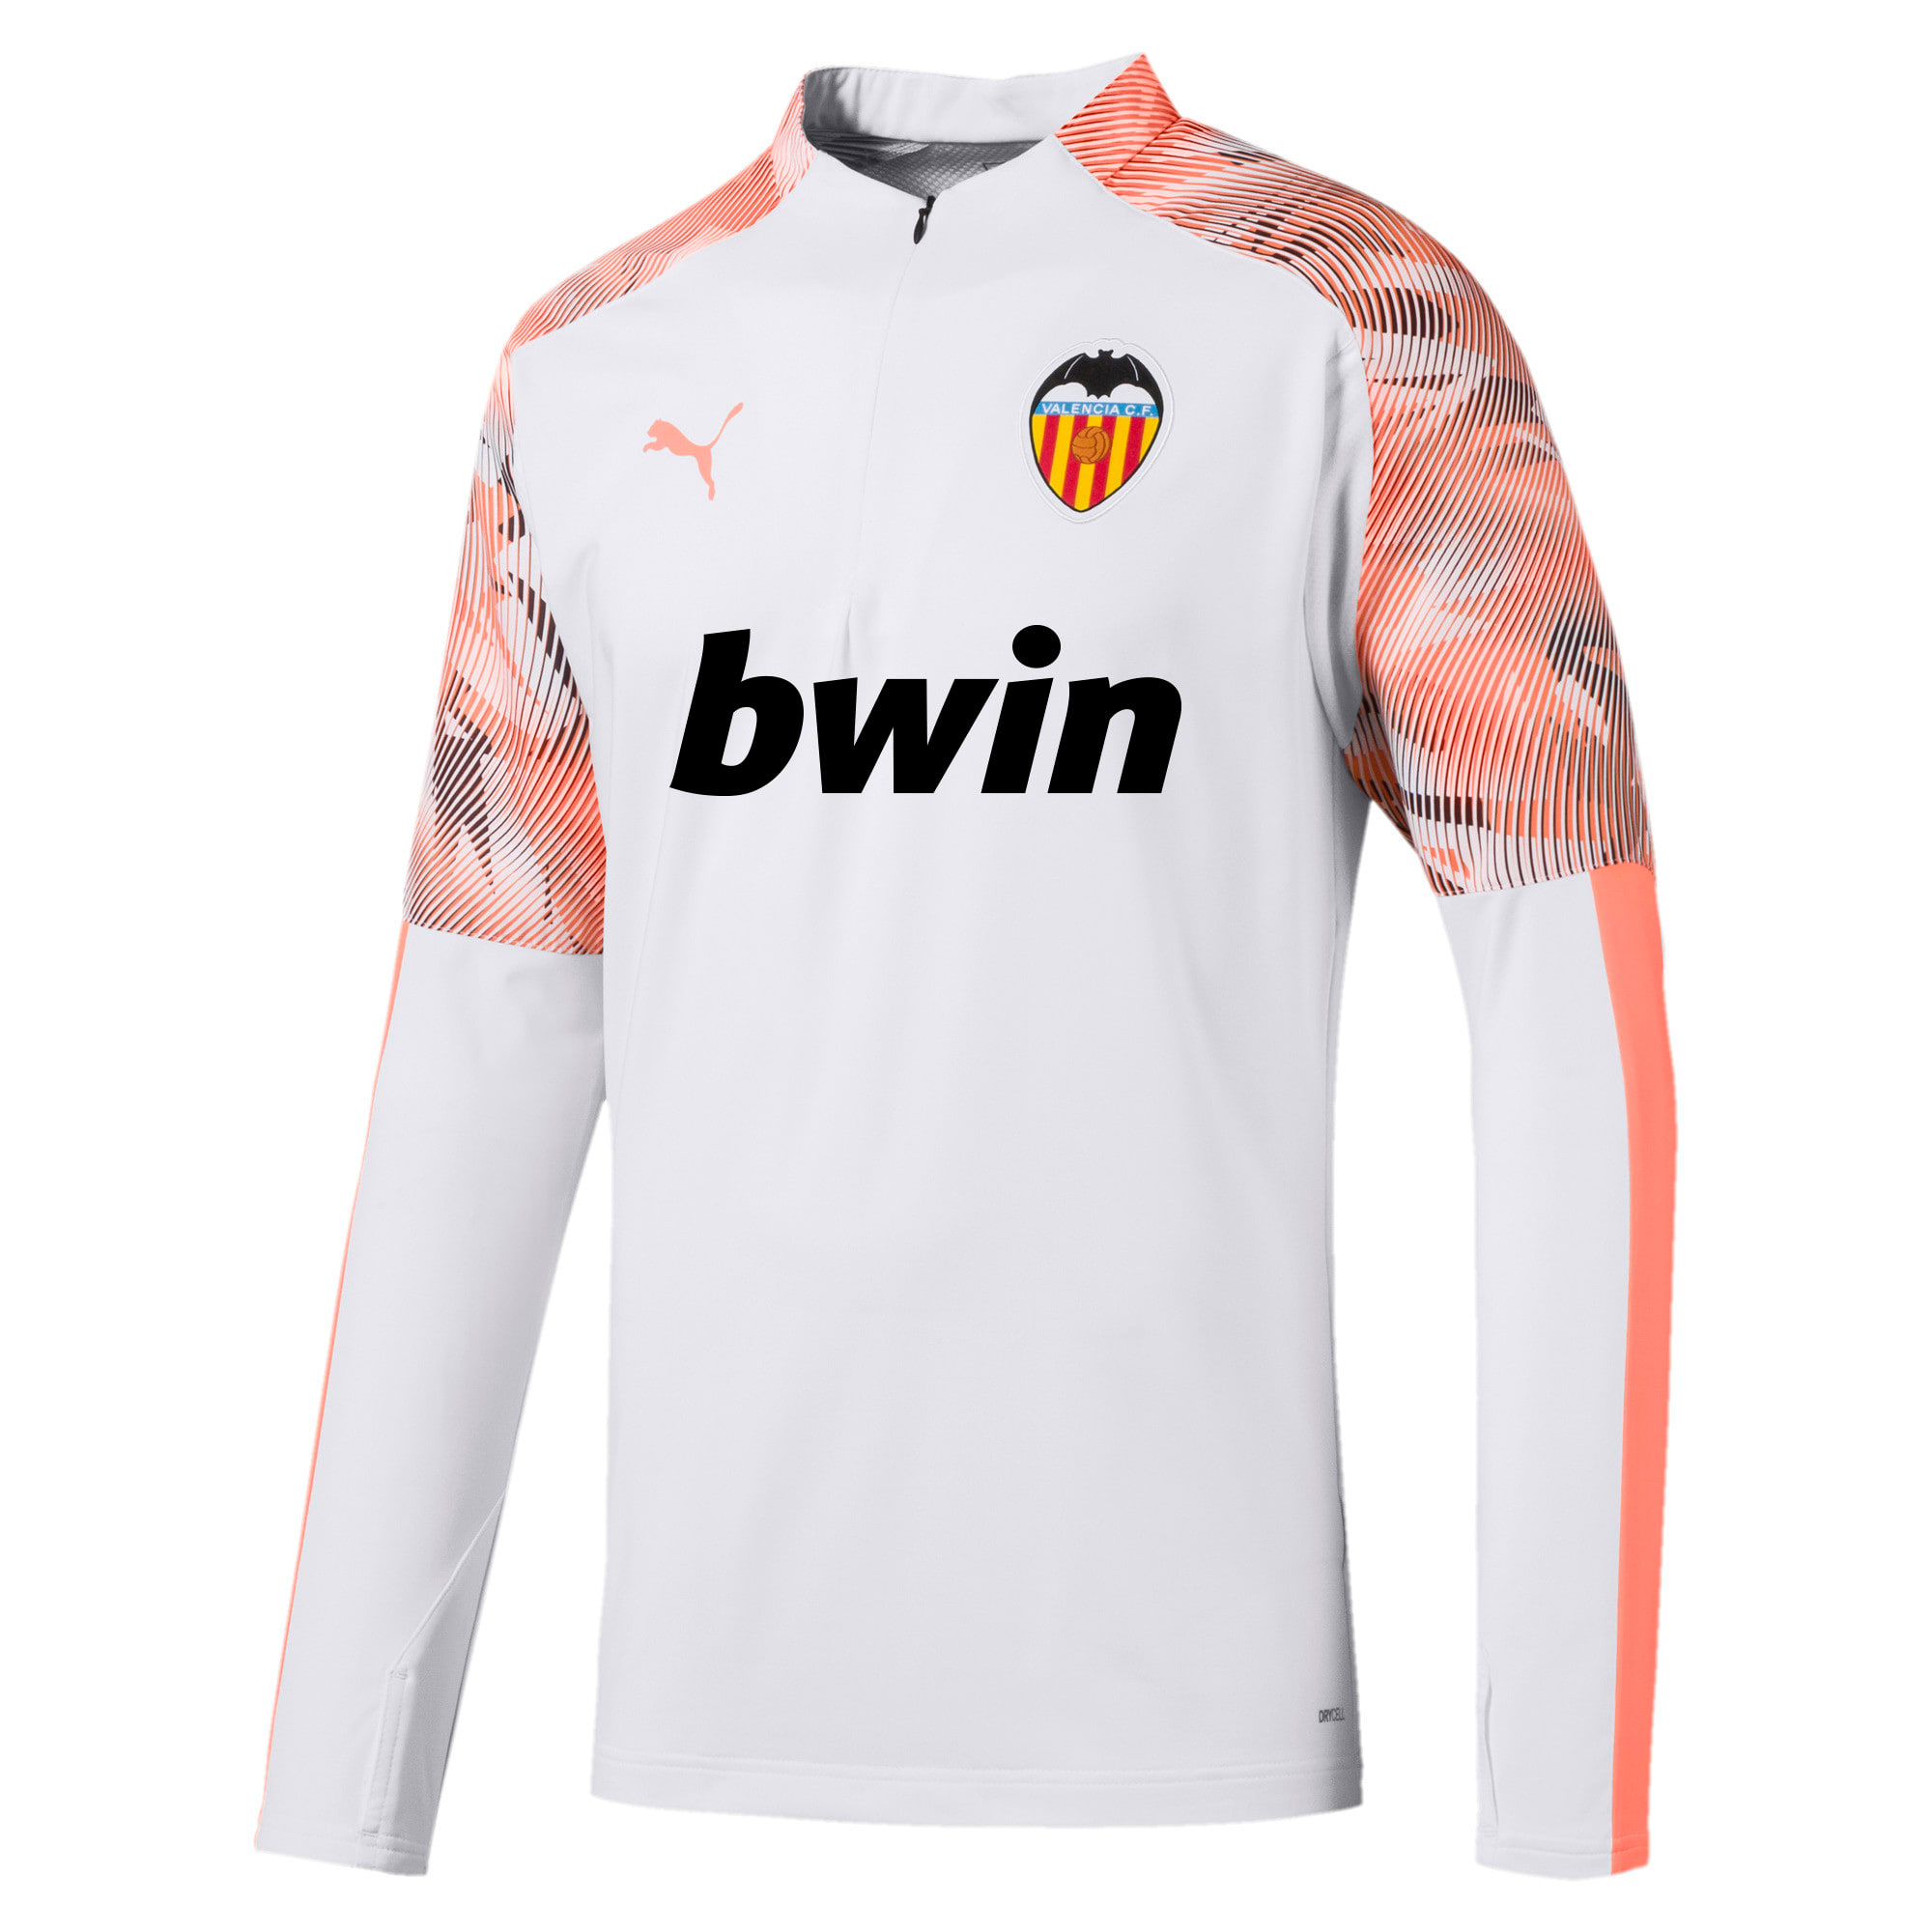 Thumbnail 1 of Valencia CF Quarter Zip Men's Training Top, Puma White-Fizzy Orange, medium